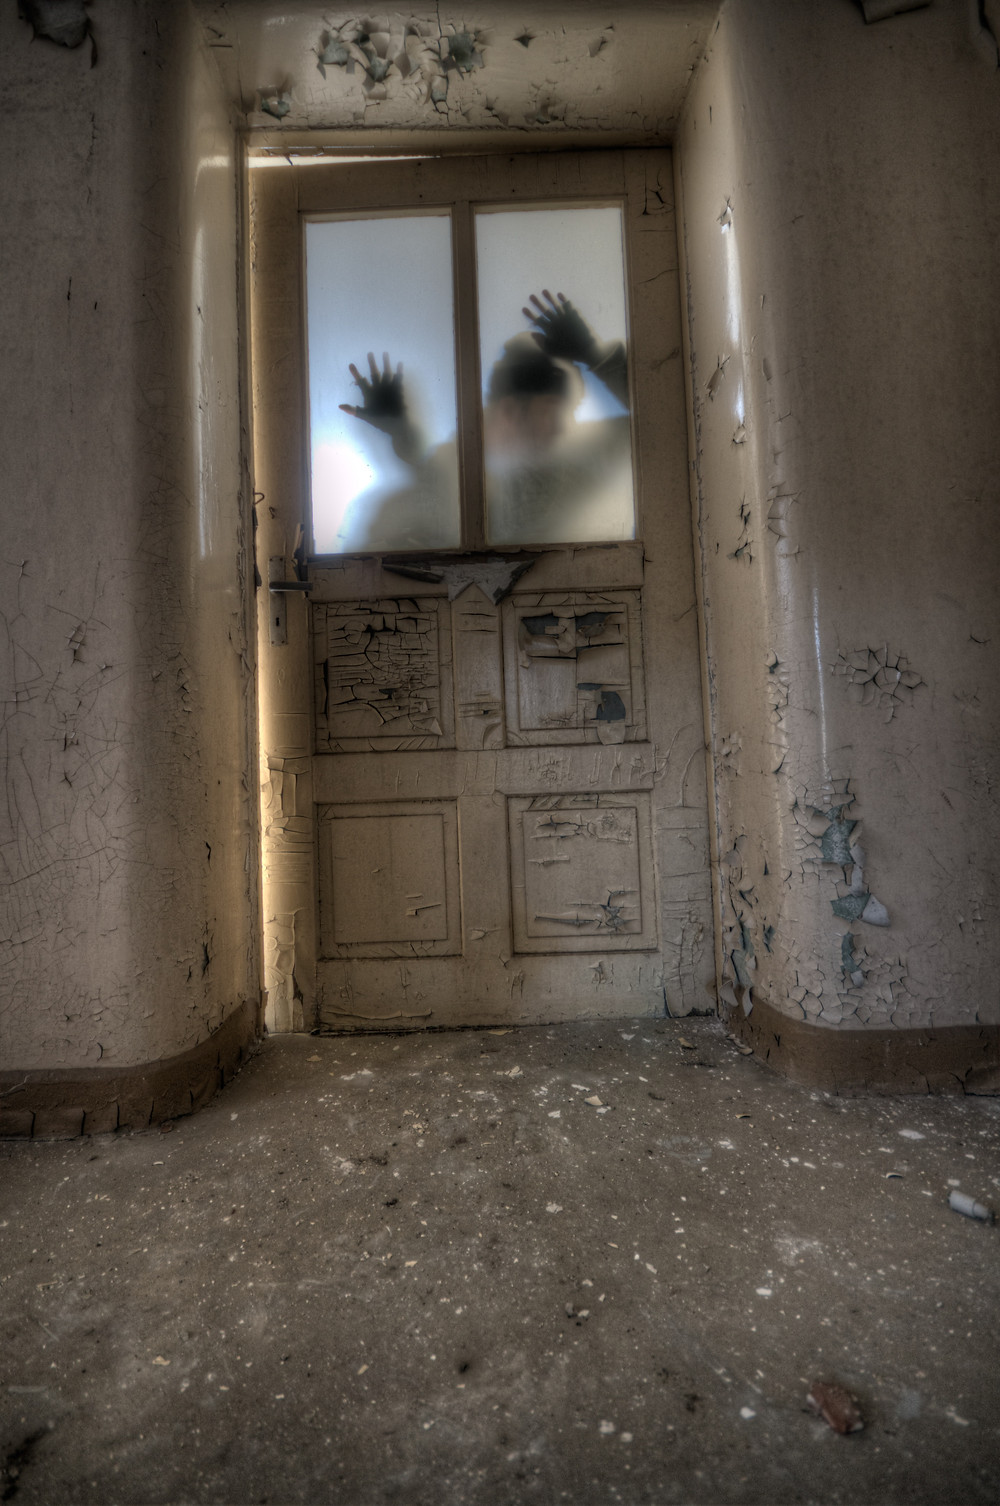 Paint peels from the walls of an old asylum. Through the frosted glass of a dilapidated door you see the silhouette of hands reaching out trying to escape.